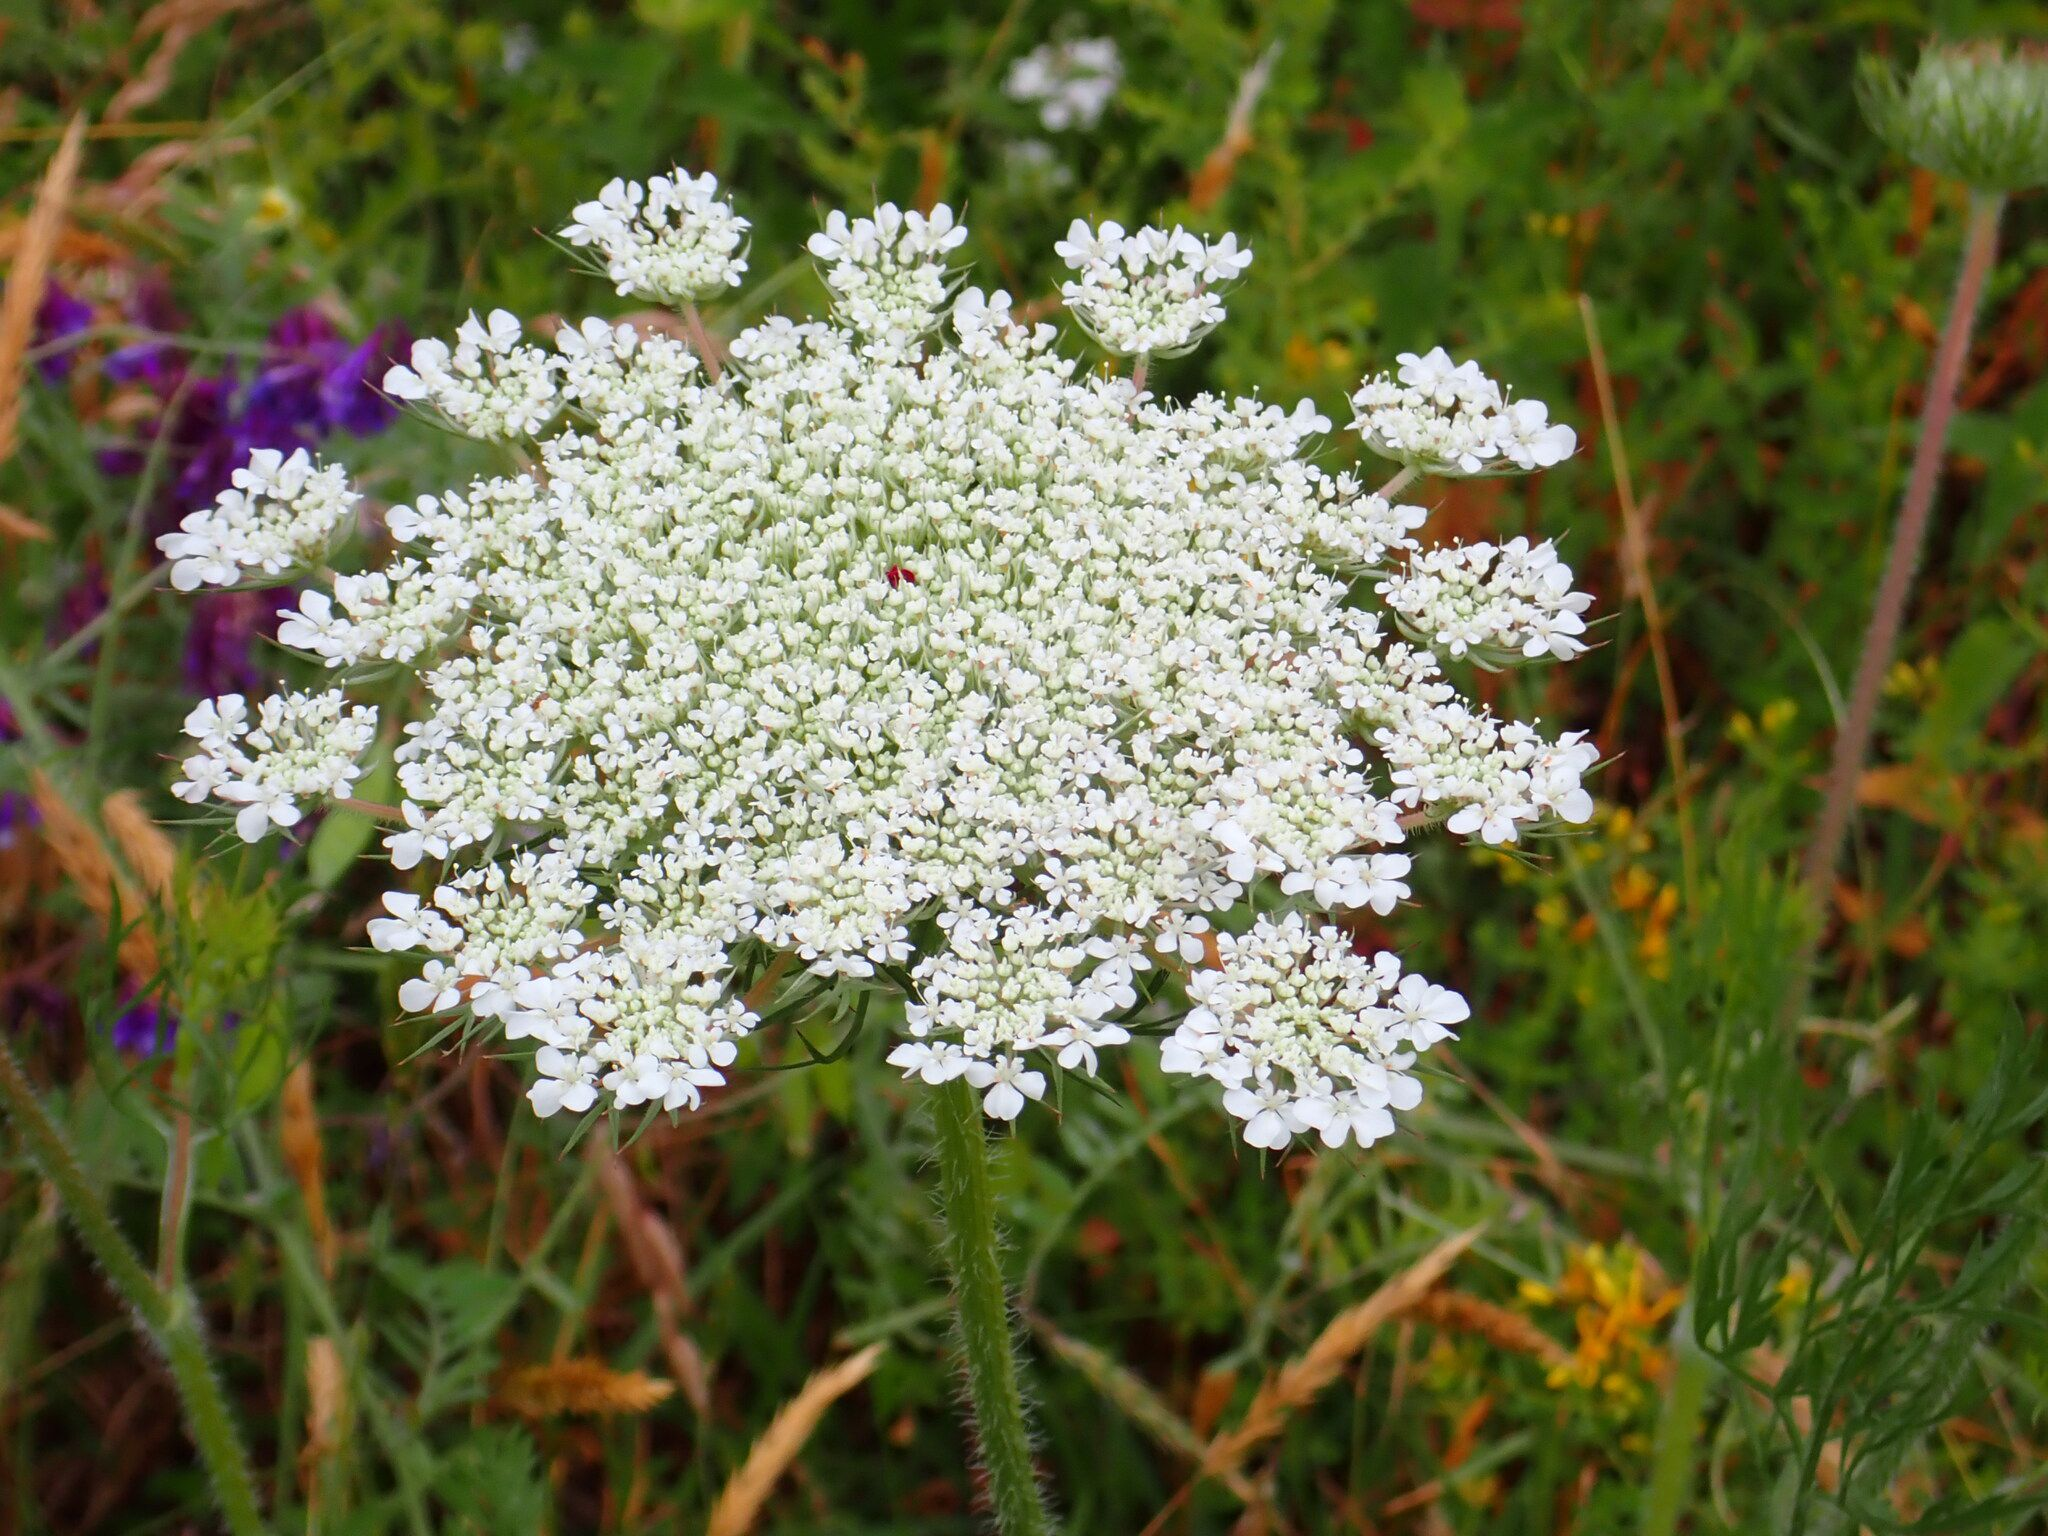 A large white Queen Anne's lace flower is growing in a field.